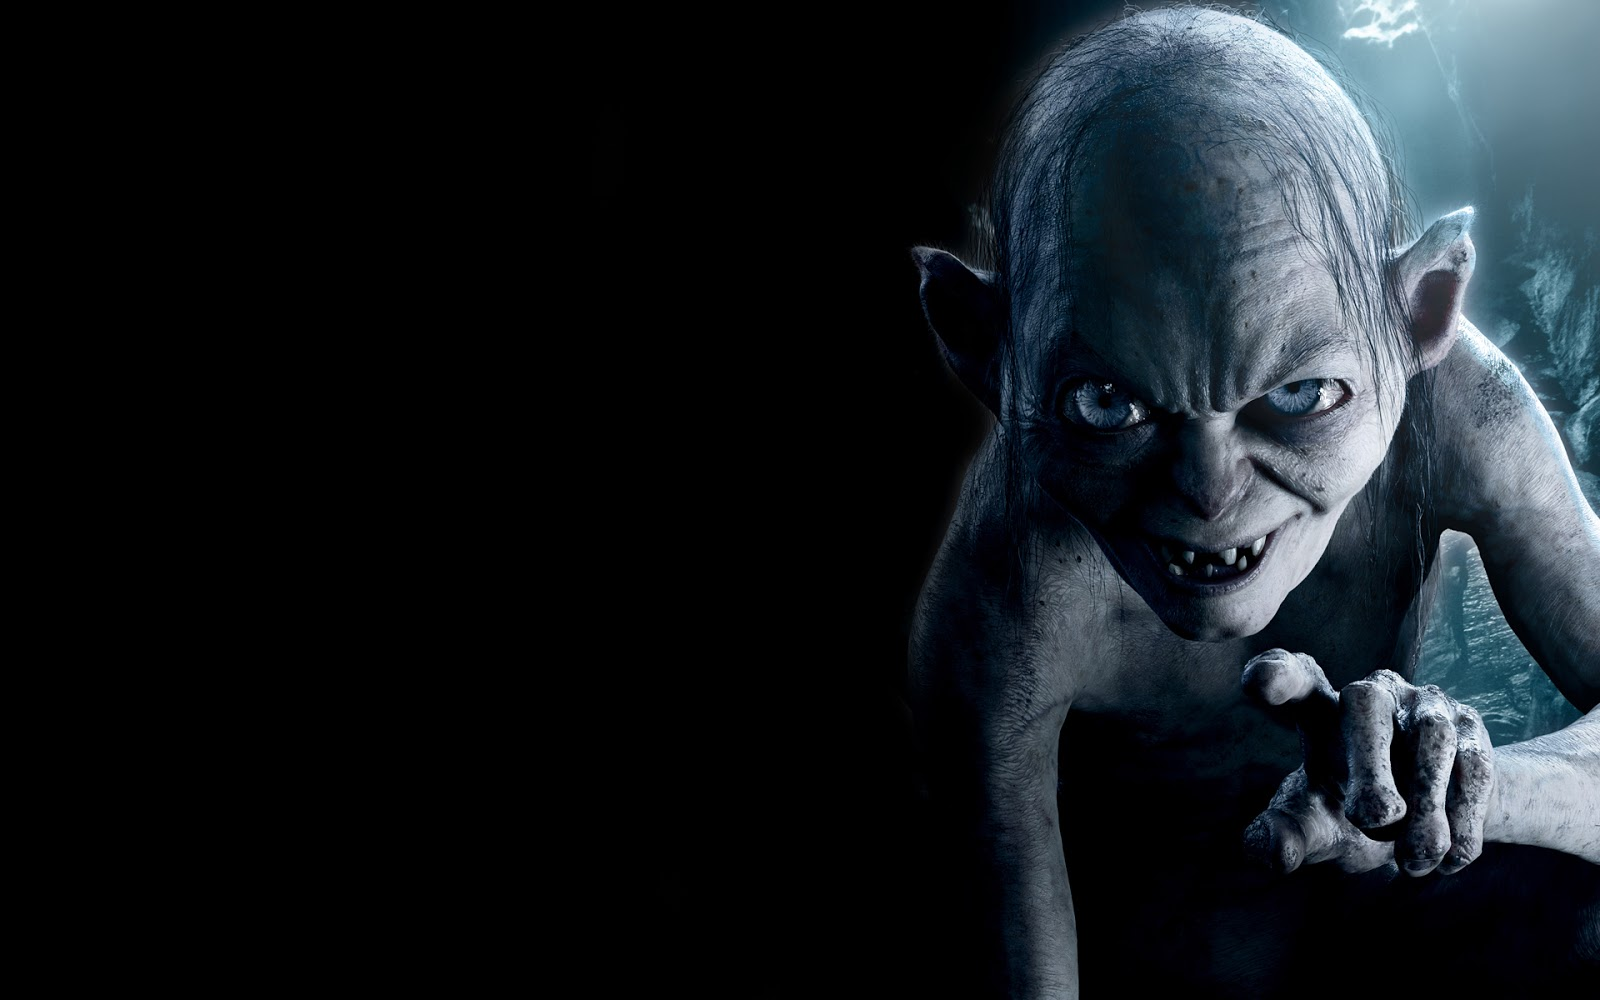 Gollum Hobbit An Unexpected Journey Movie HD Wallpaper 1600x1000